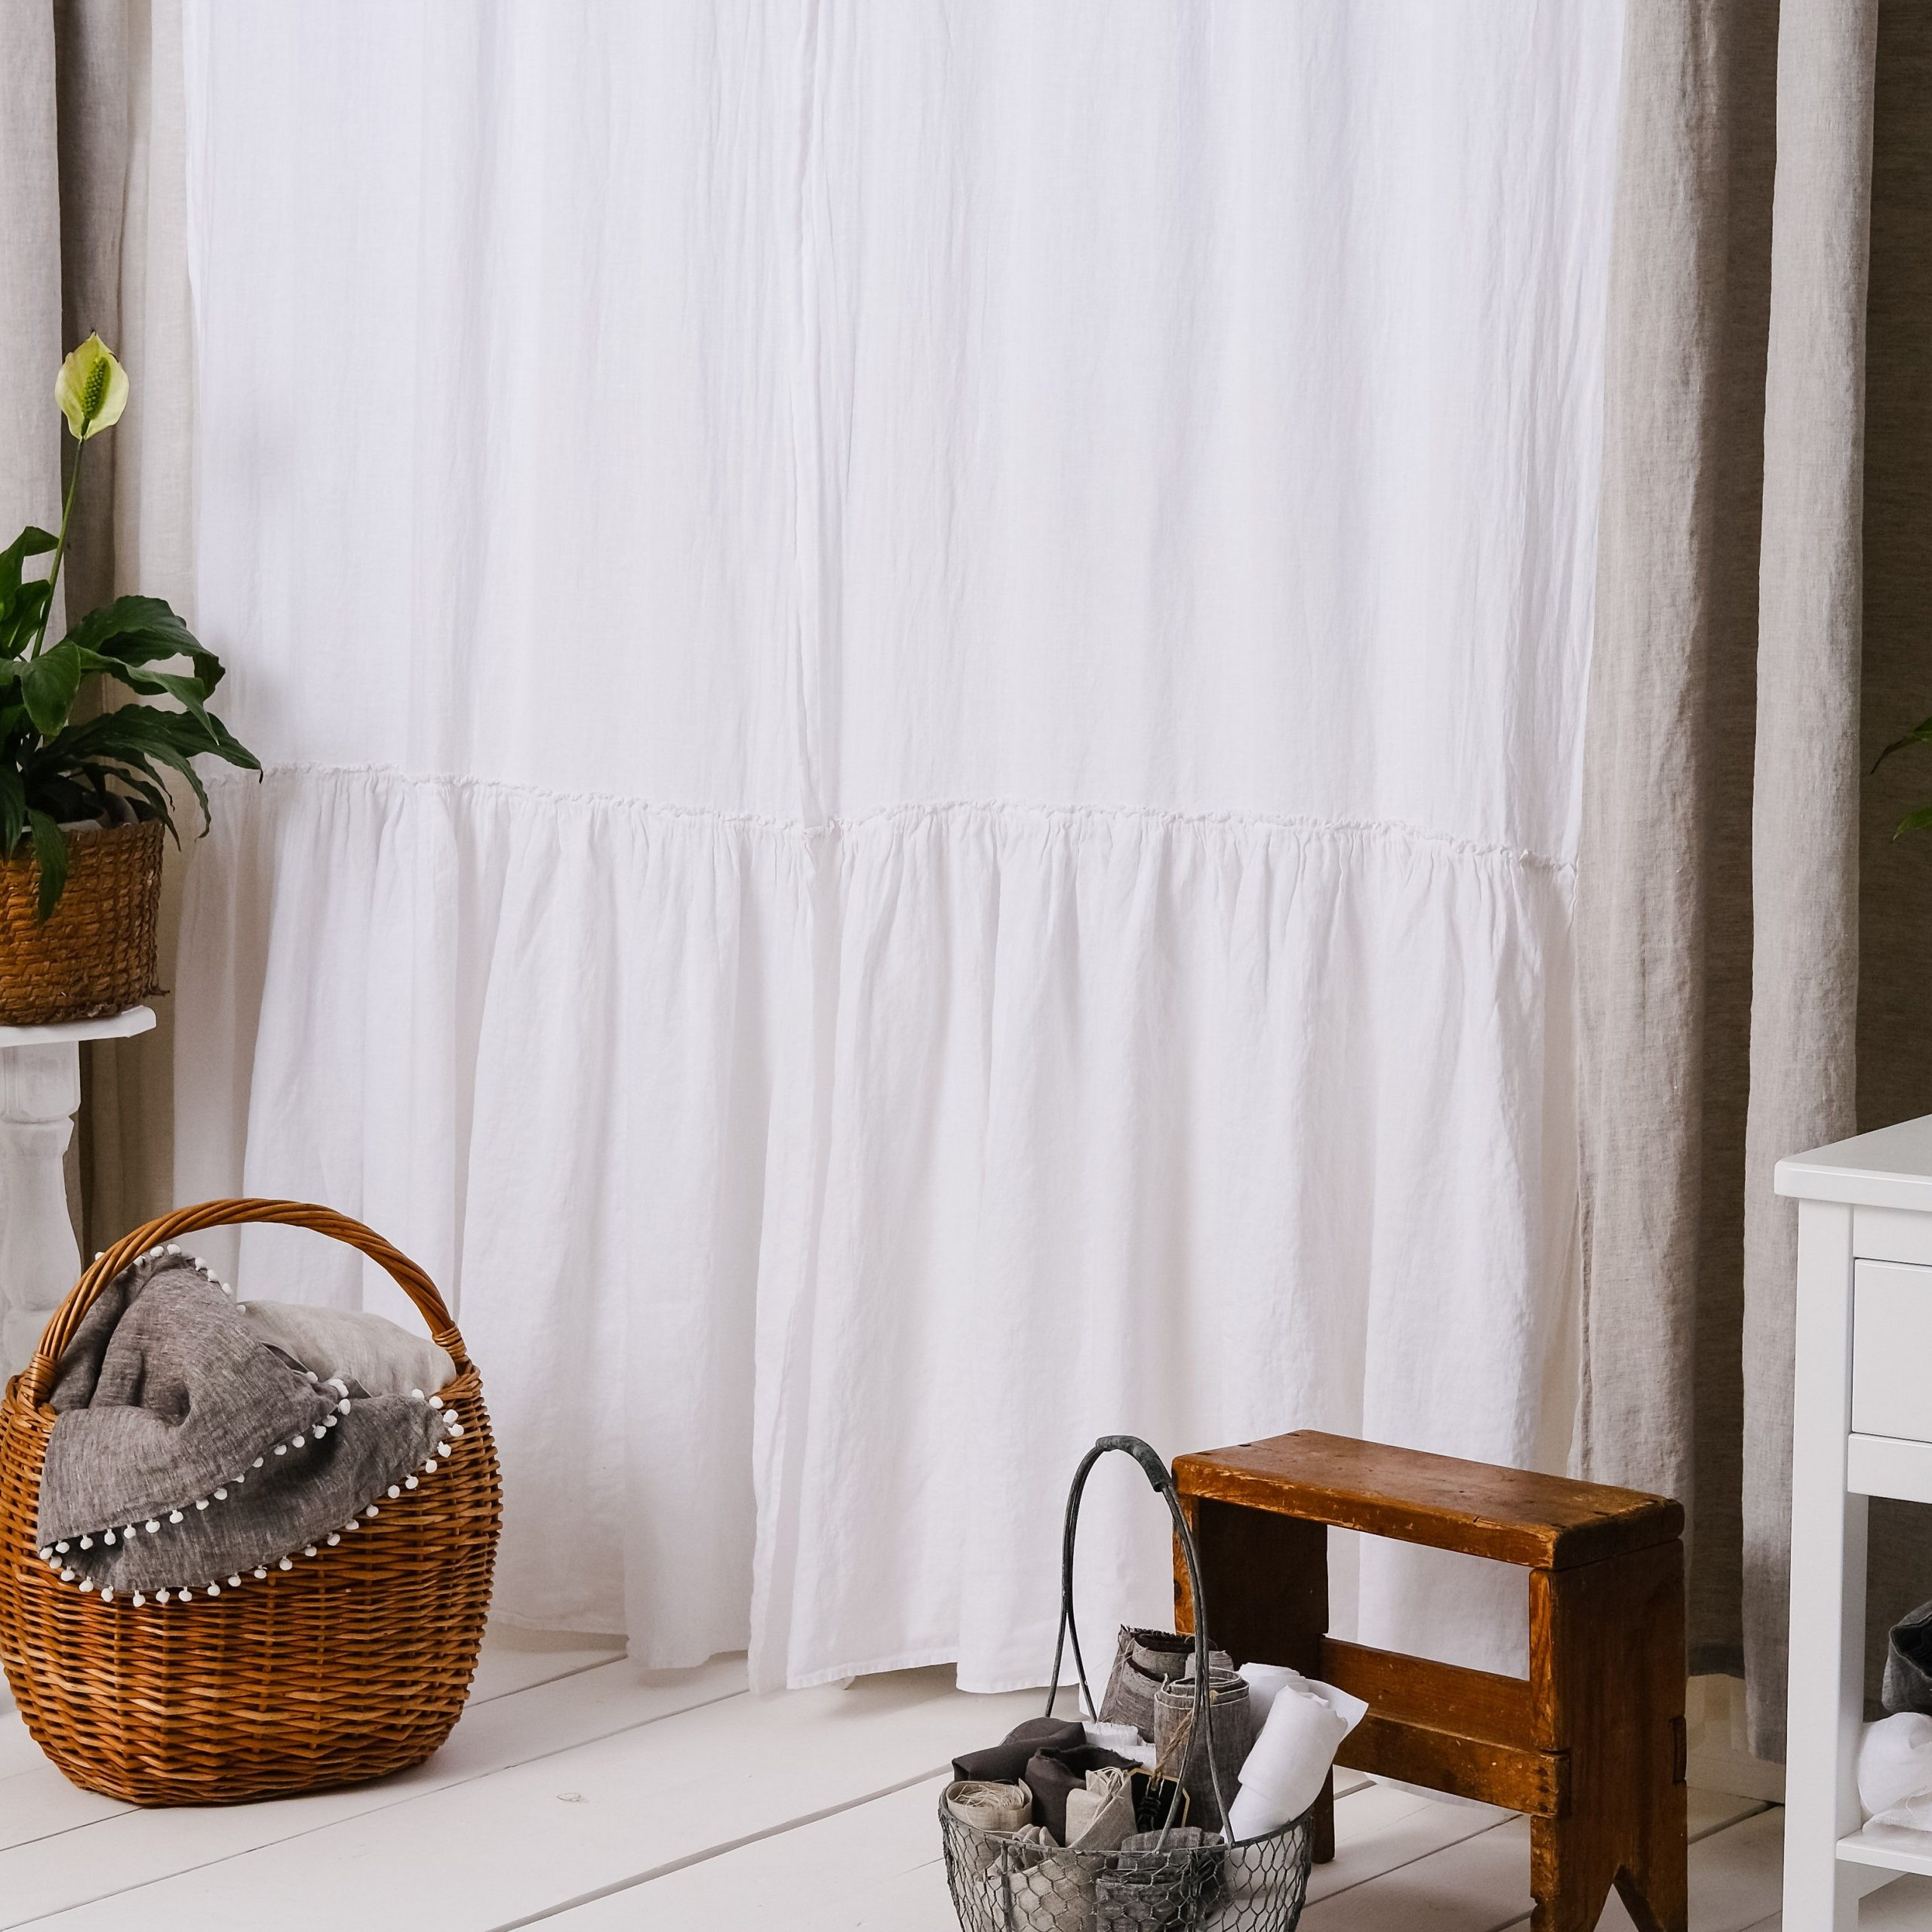 [%Luxury 100% Linen Farmhouse Ruffle Linen Curtain Panels Set In Trendy Signature French Linen Curtain Panels|Signature French Linen Curtain Panels With Regard To Popular Luxury 100% Linen Farmhouse Ruffle Linen Curtain Panels Set|Current Signature French Linen Curtain Panels Regarding Luxury 100% Linen Farmhouse Ruffle Linen Curtain Panels Set|Most Recent Luxury 100% Linen Farmhouse Ruffle Linen Curtain Panels Set Regarding Signature French Linen Curtain Panels%] (View 20 of 20)